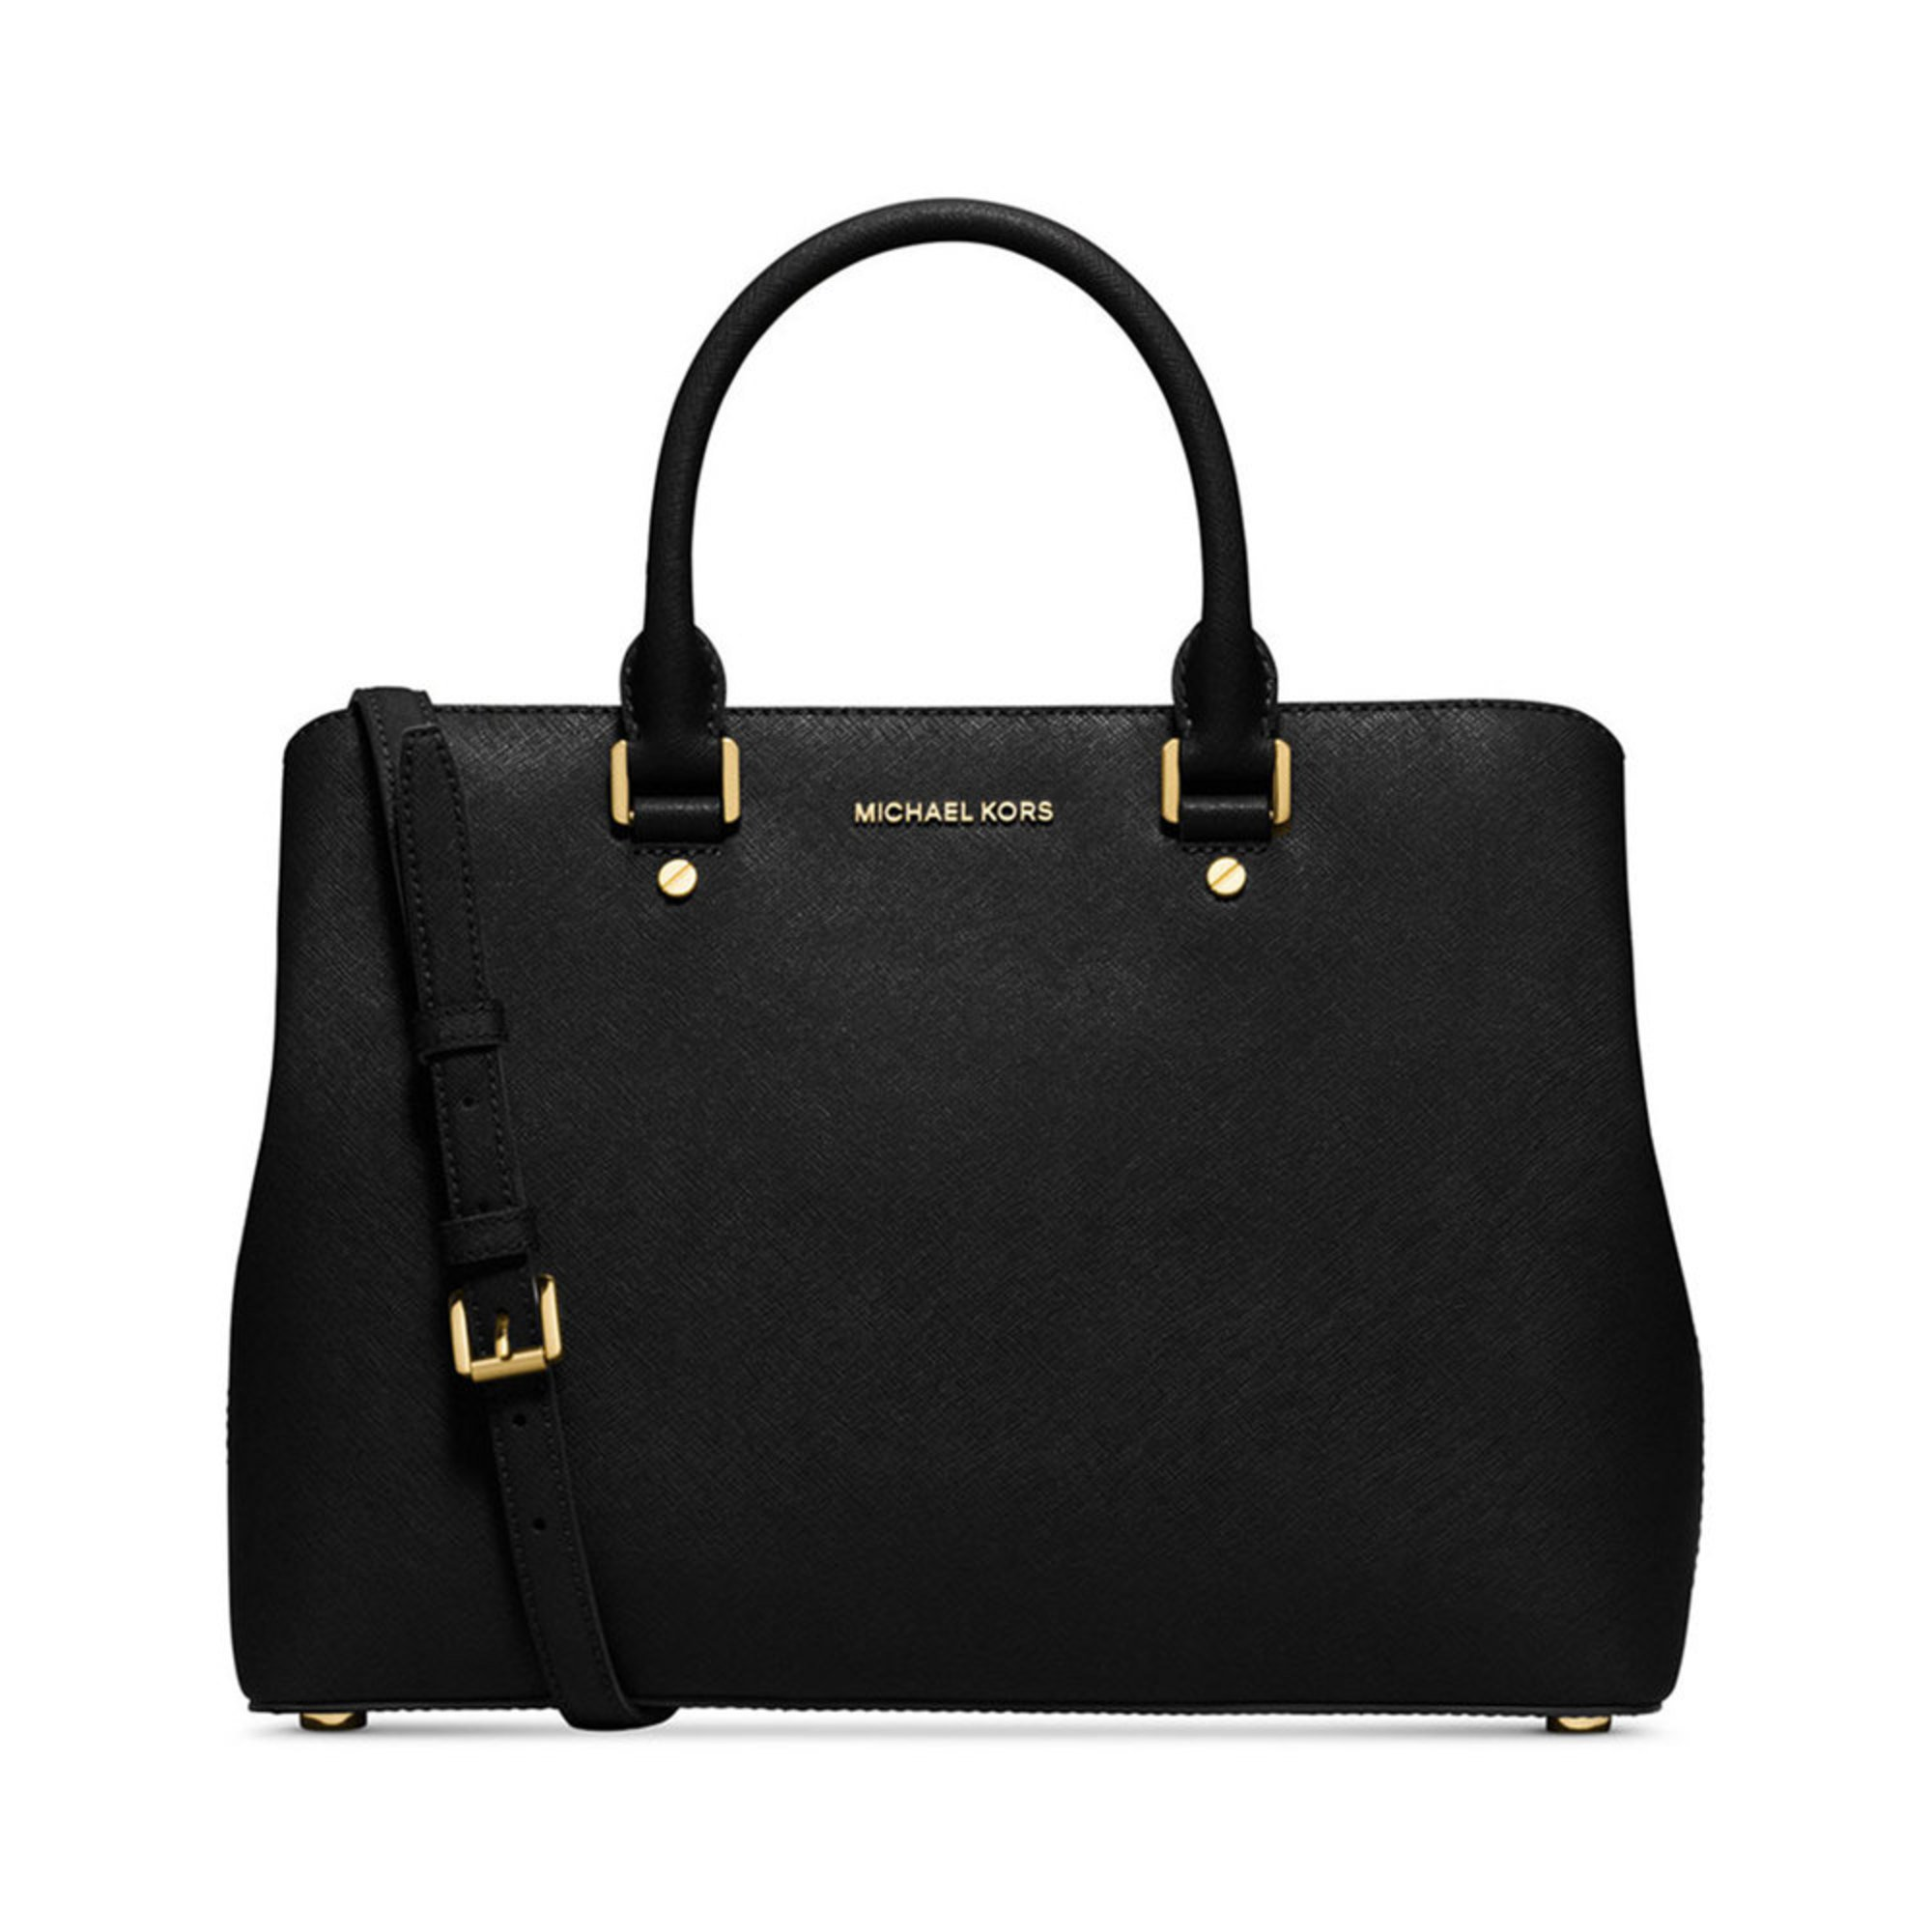 cheap mk bags marshalls michael kors michael kors discount purses michael kors handbags on sale outlet michael kors official site michael kors outlet nj mk purses outlet rosemont outlet mall hours Get Clearance Michael Kors For Me,New Season.